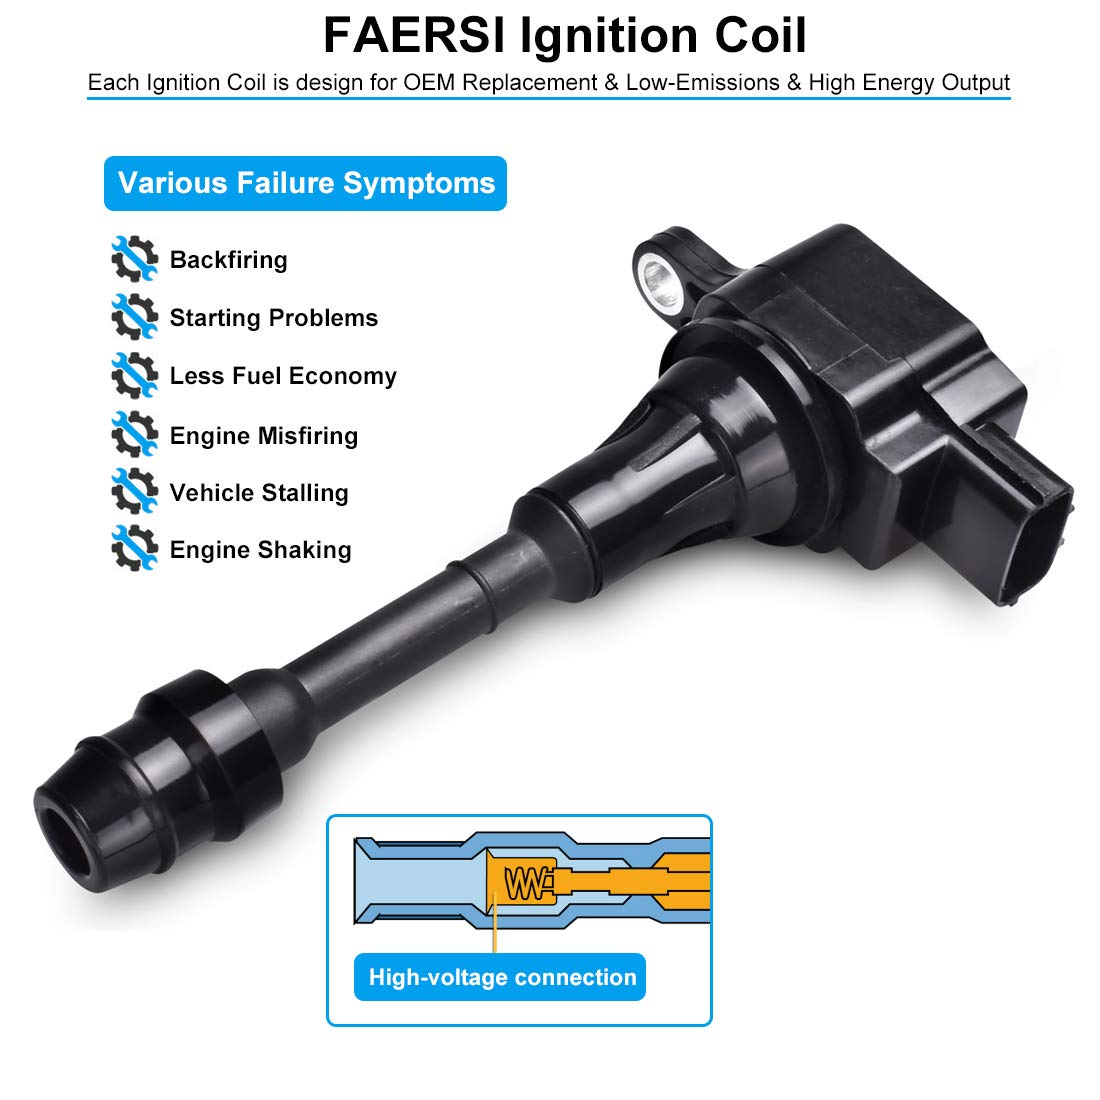 Ignition Coil Pack of 4 Replace# UF350 2002-2008 Nissan Sentra 2002-2006 Nissan Altima 22448-8H310 2002-2008 /& 2010-2013 Nissan X-trail 22448-8H315 C1398 for L4 2.5L